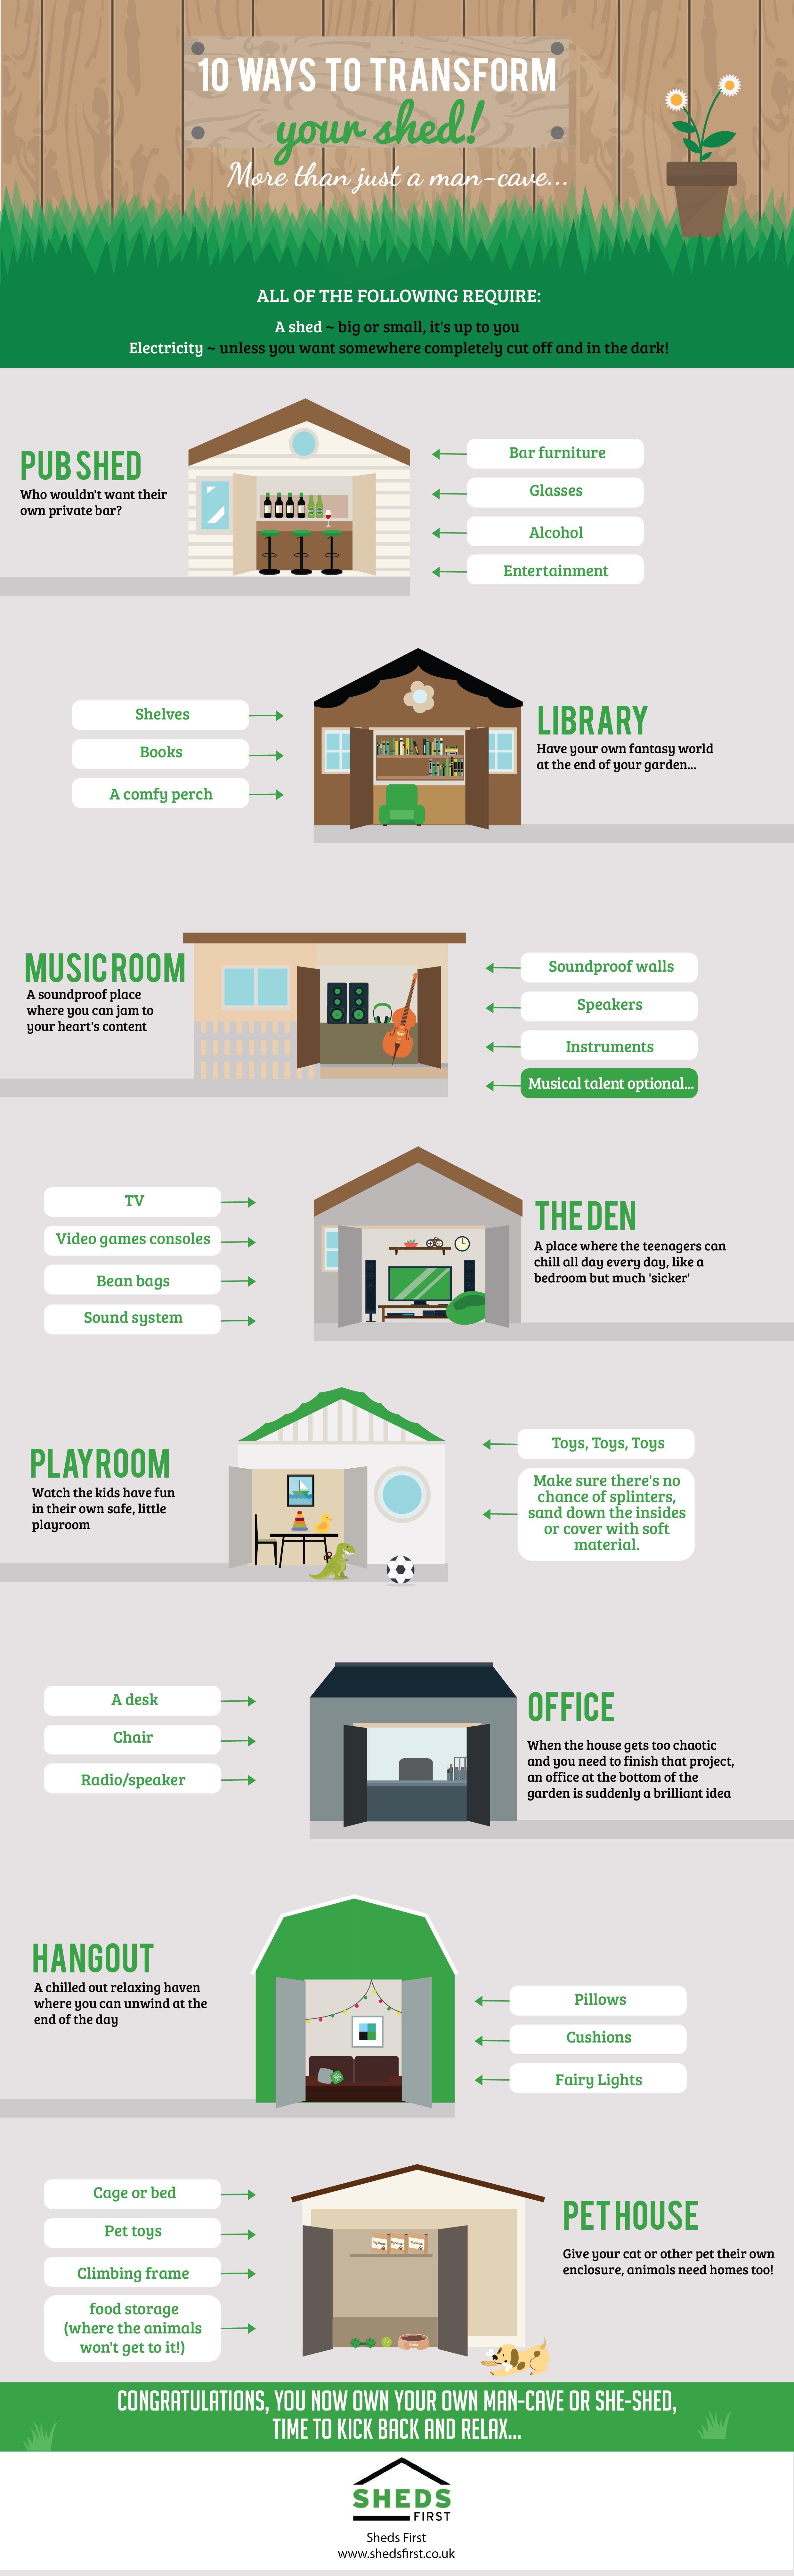 Shed transformation infographic